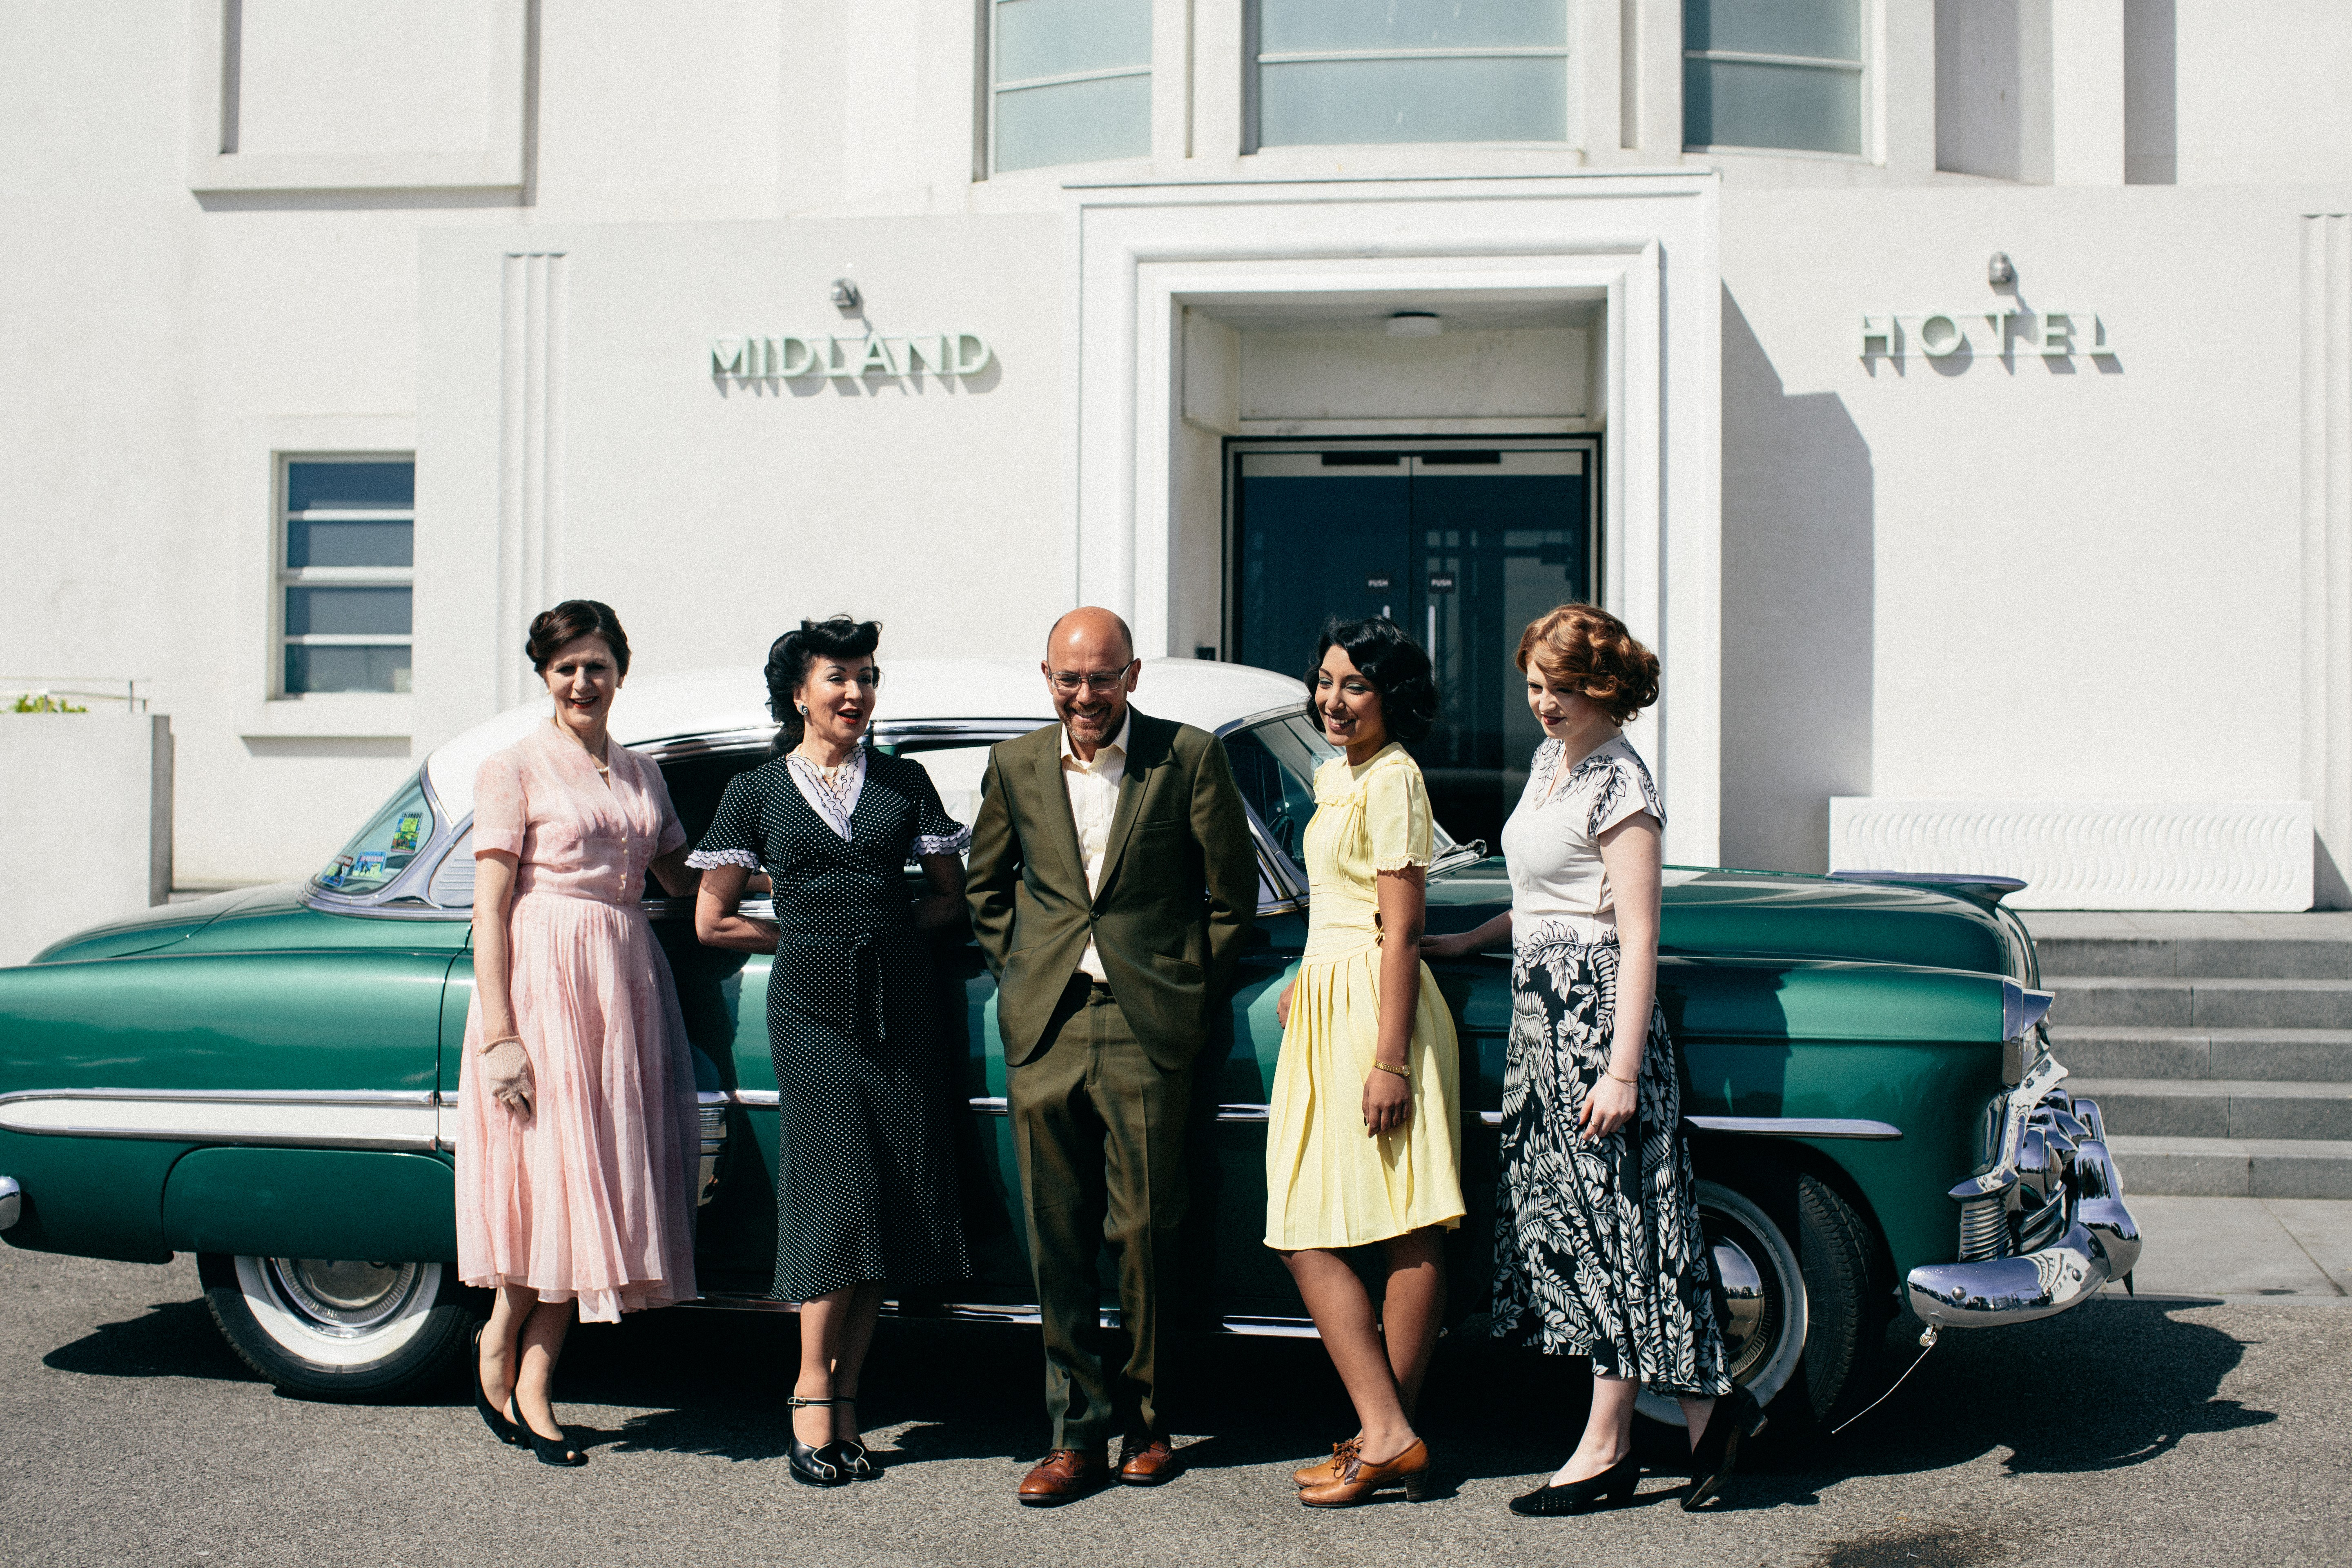 Vintage by the sea at the Midland Hotel, Morecambe